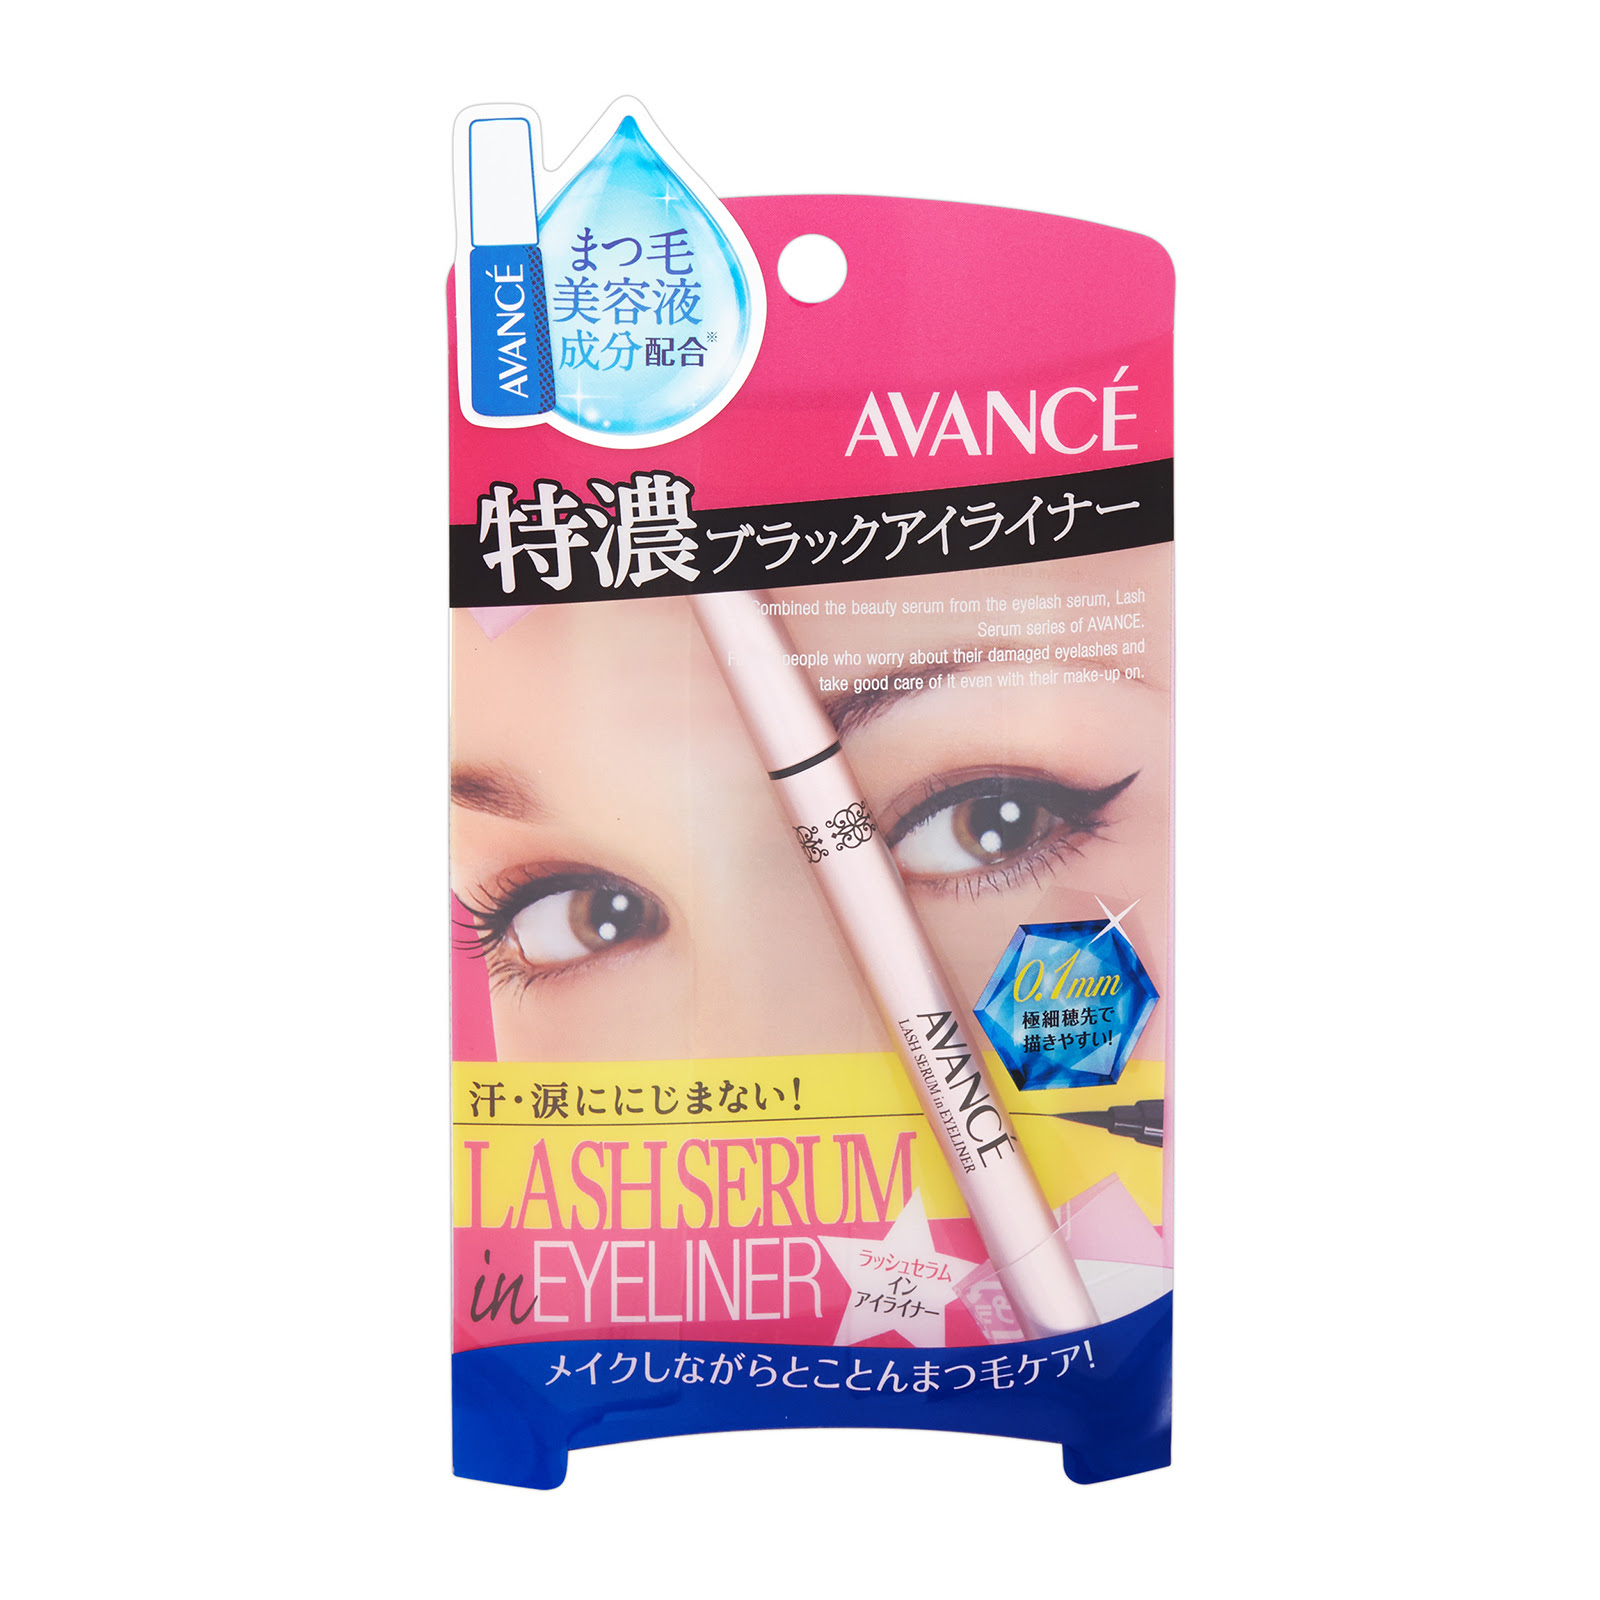 Avance Lash Serum in Eyeliner